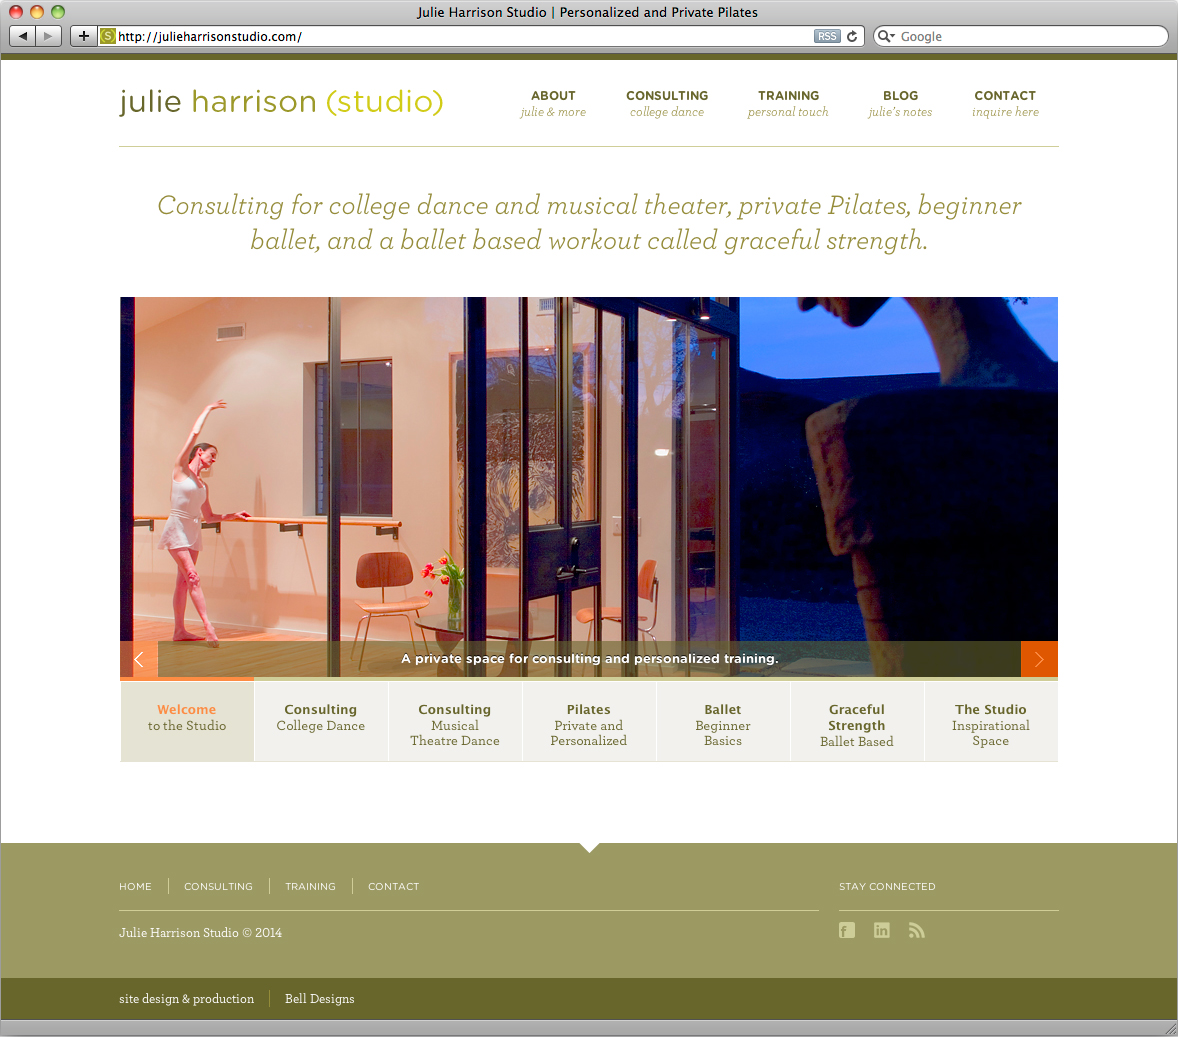 The homepage for julieharrisonstudo.com.